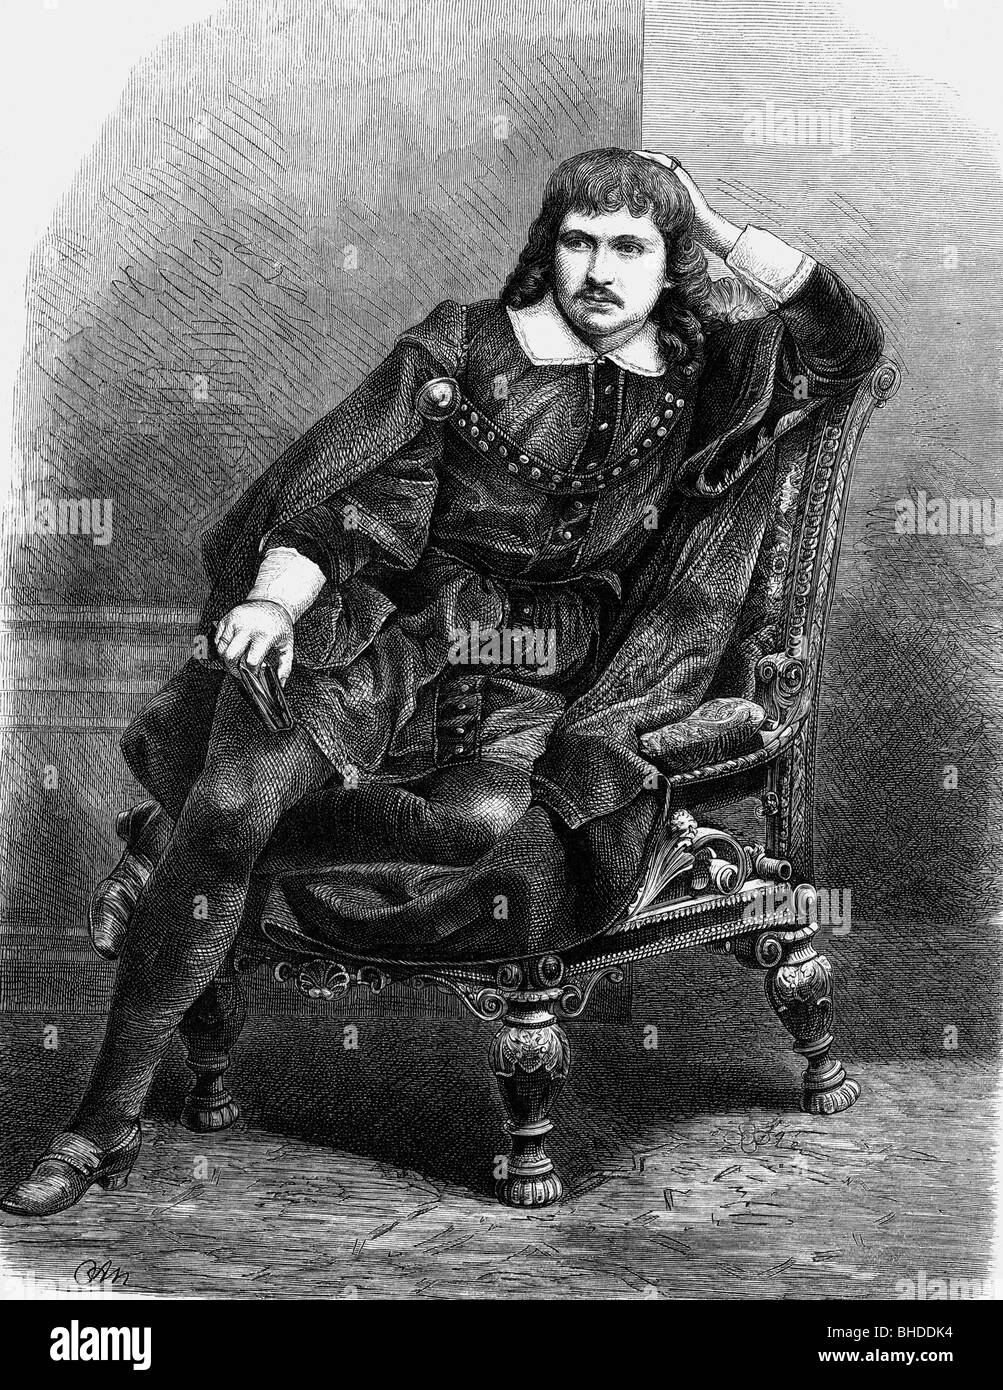 Friedmann, Siegwart, 1842 - 1916, German actor, half length, as 'Hamlet', sitting on armchair, wood engraving - Stock Image